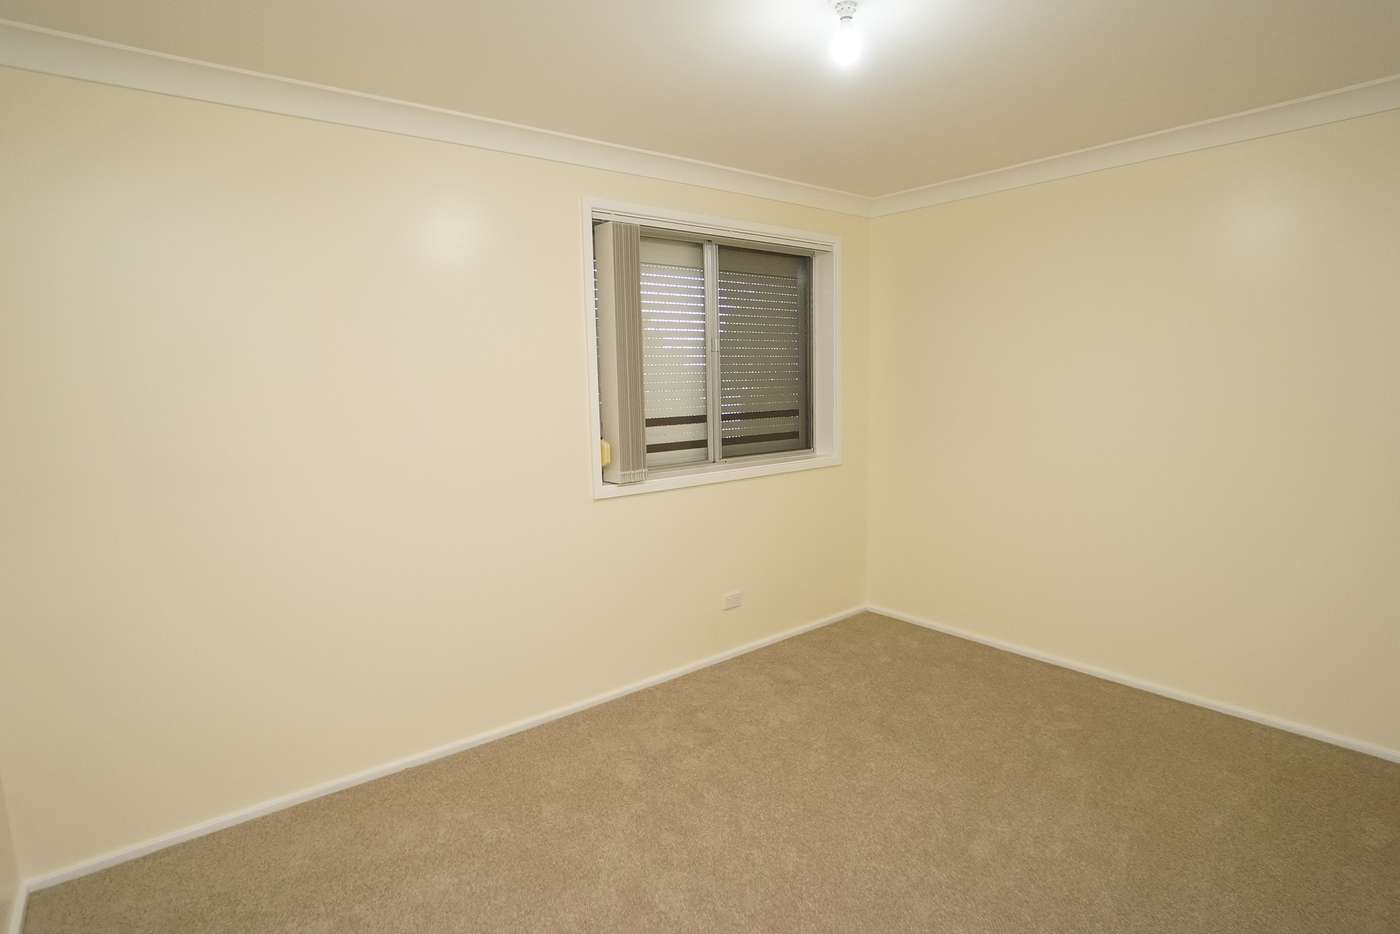 Sixth view of Homely house listing, 68 Kiora Street, Canley Heights NSW 2166